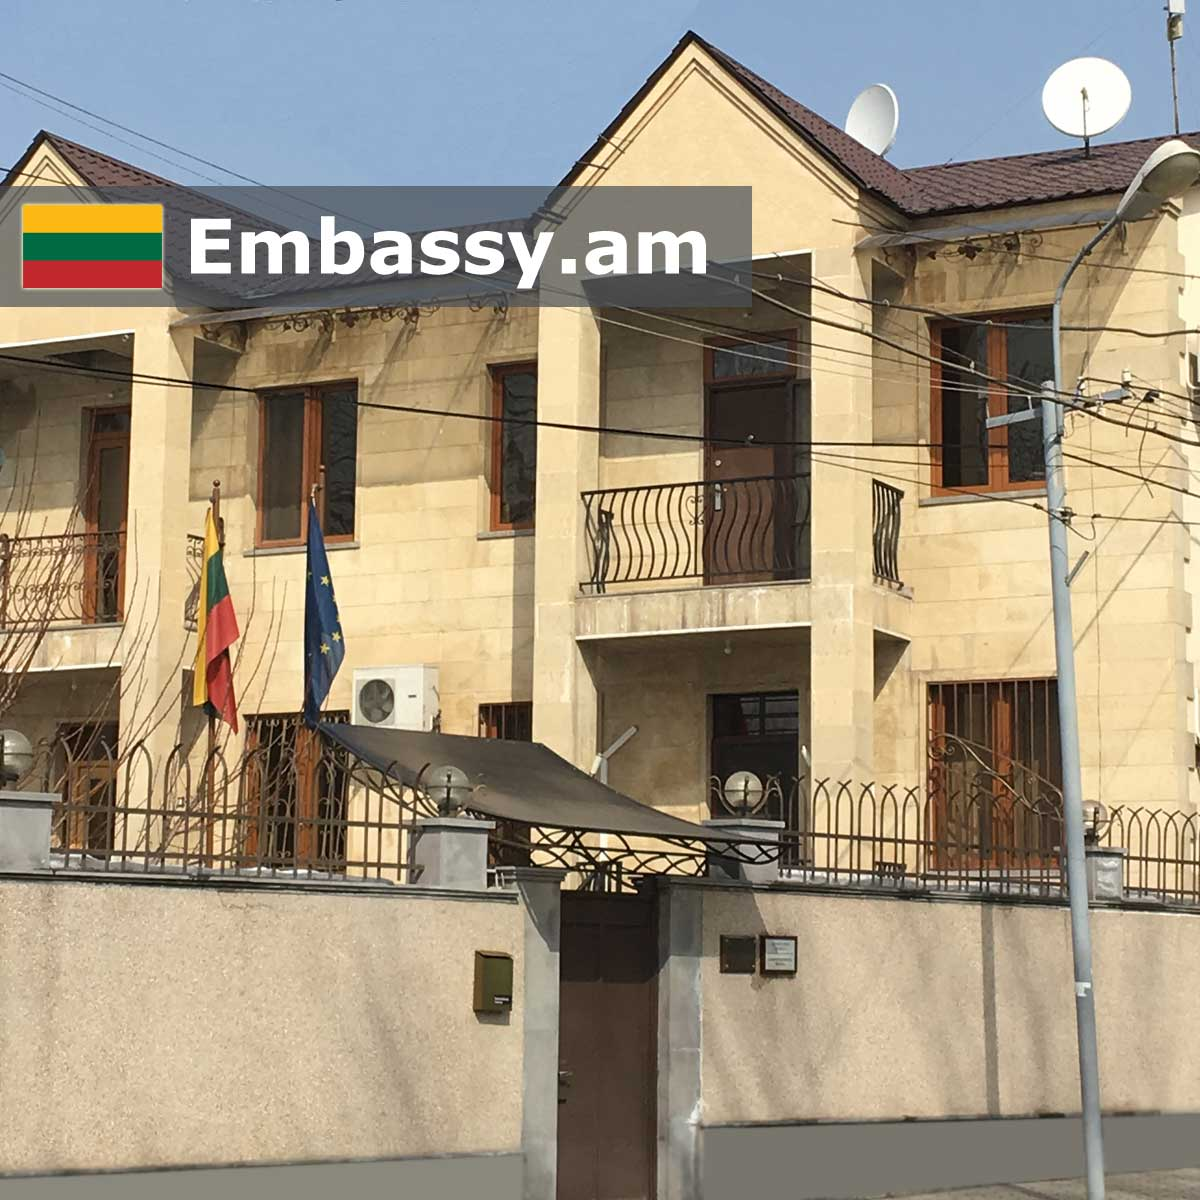 Embassy of the Republic of Lithuania in Armenia - Embassy am